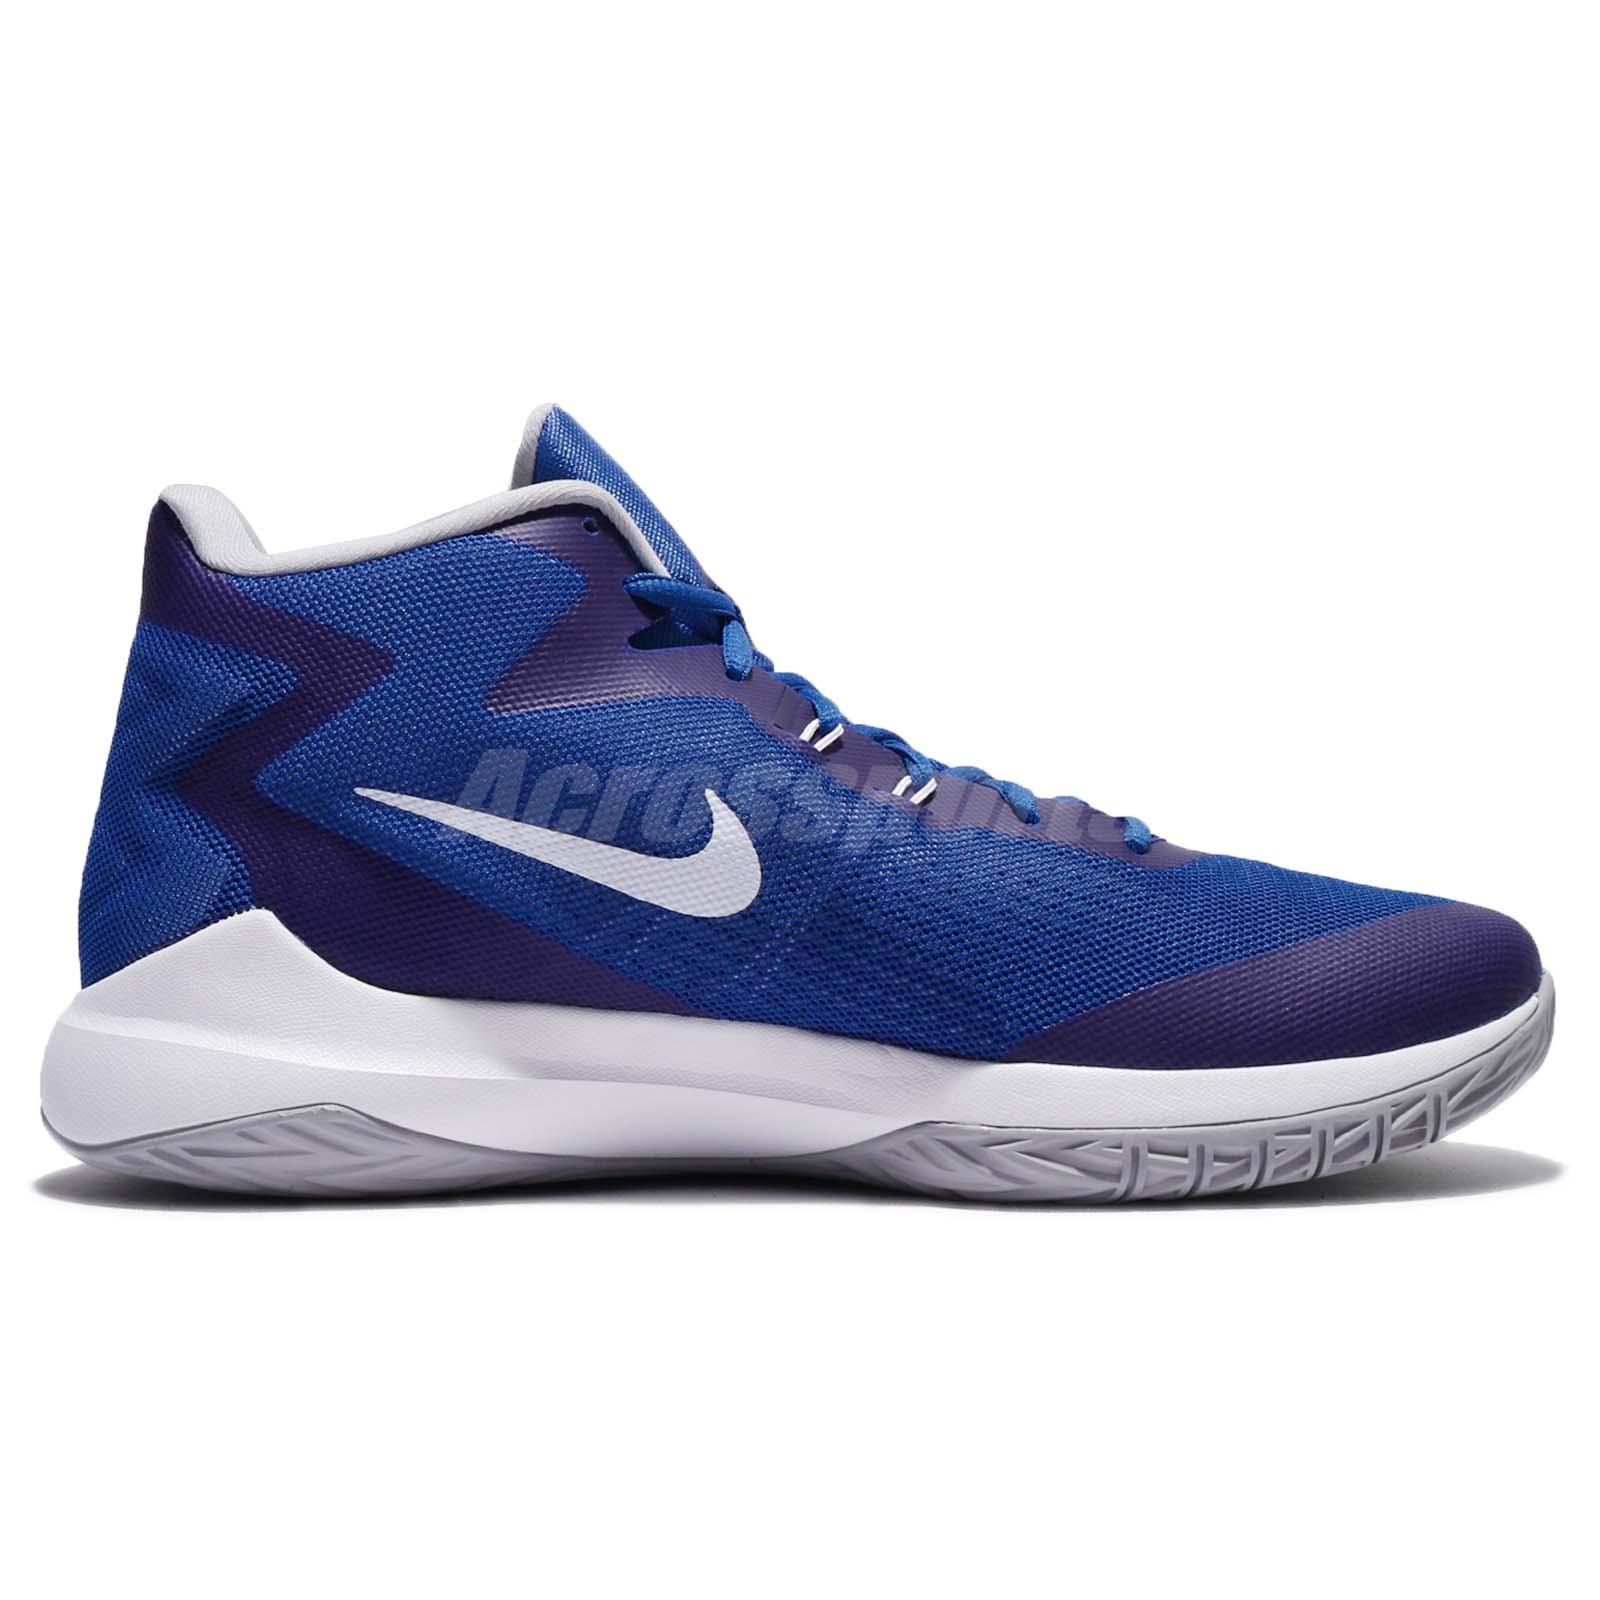 a8e14e144bbe Nike Zoom Evidence Game Blue Wolf Grey Men Basketball Shoes Sneakers ...